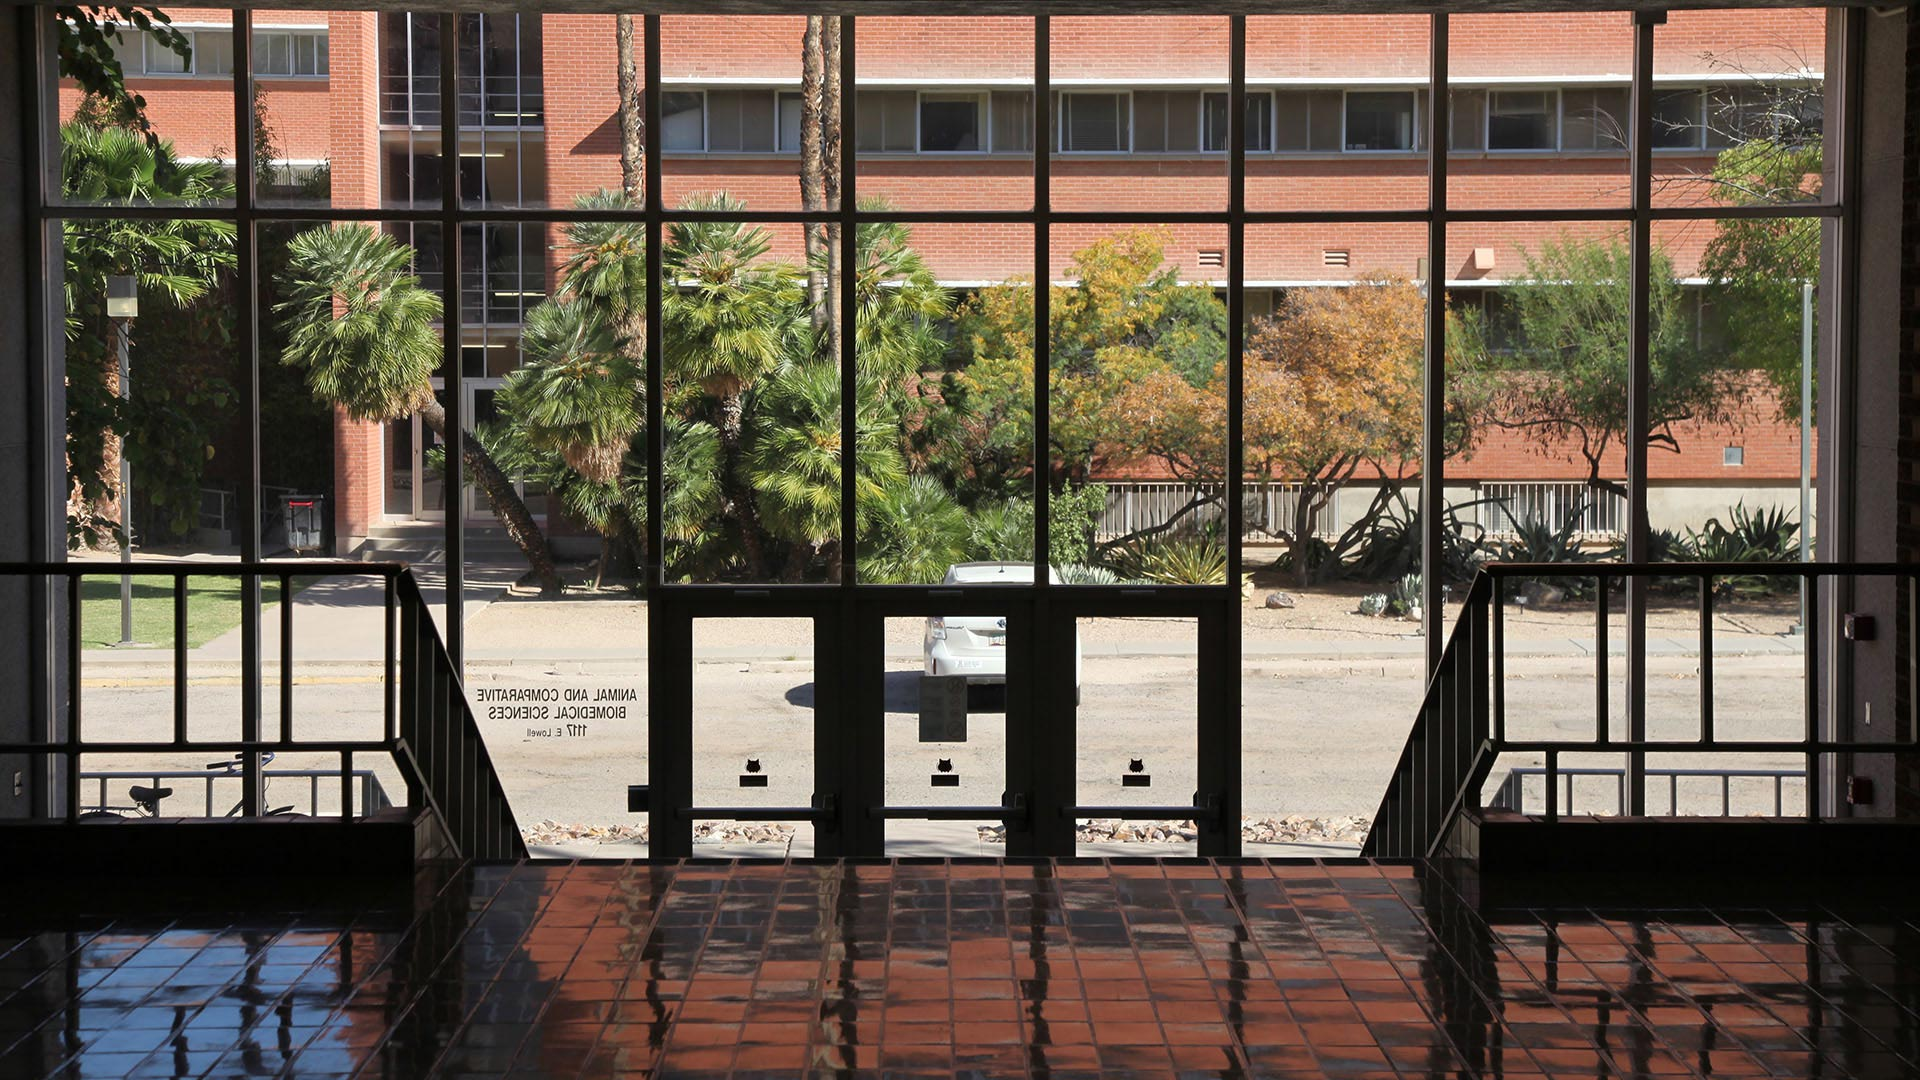 Looking out from the inside of Building 90, or the veterinary science and microbiology building.